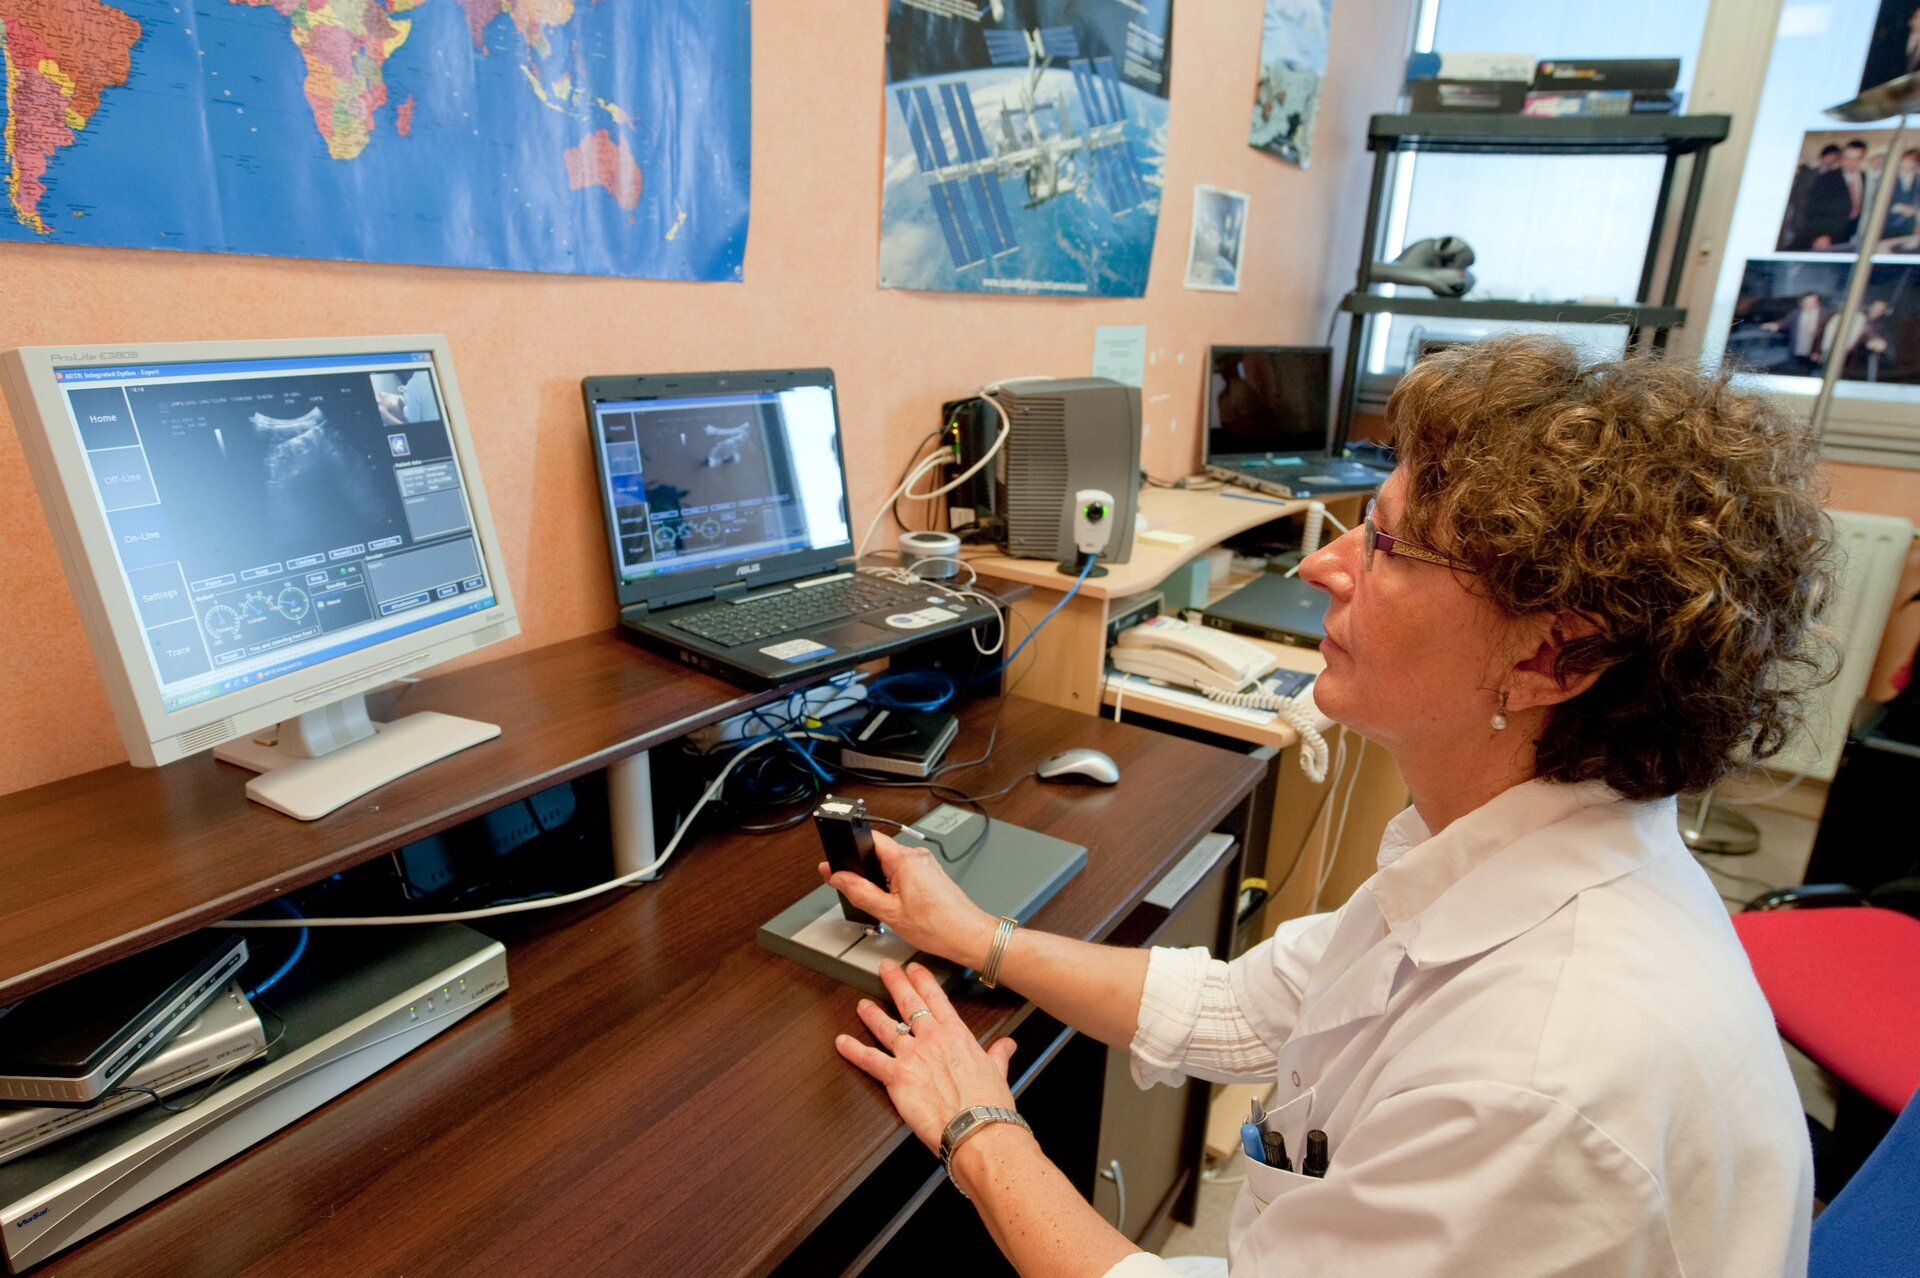 Controlled remotely by expert radiologist